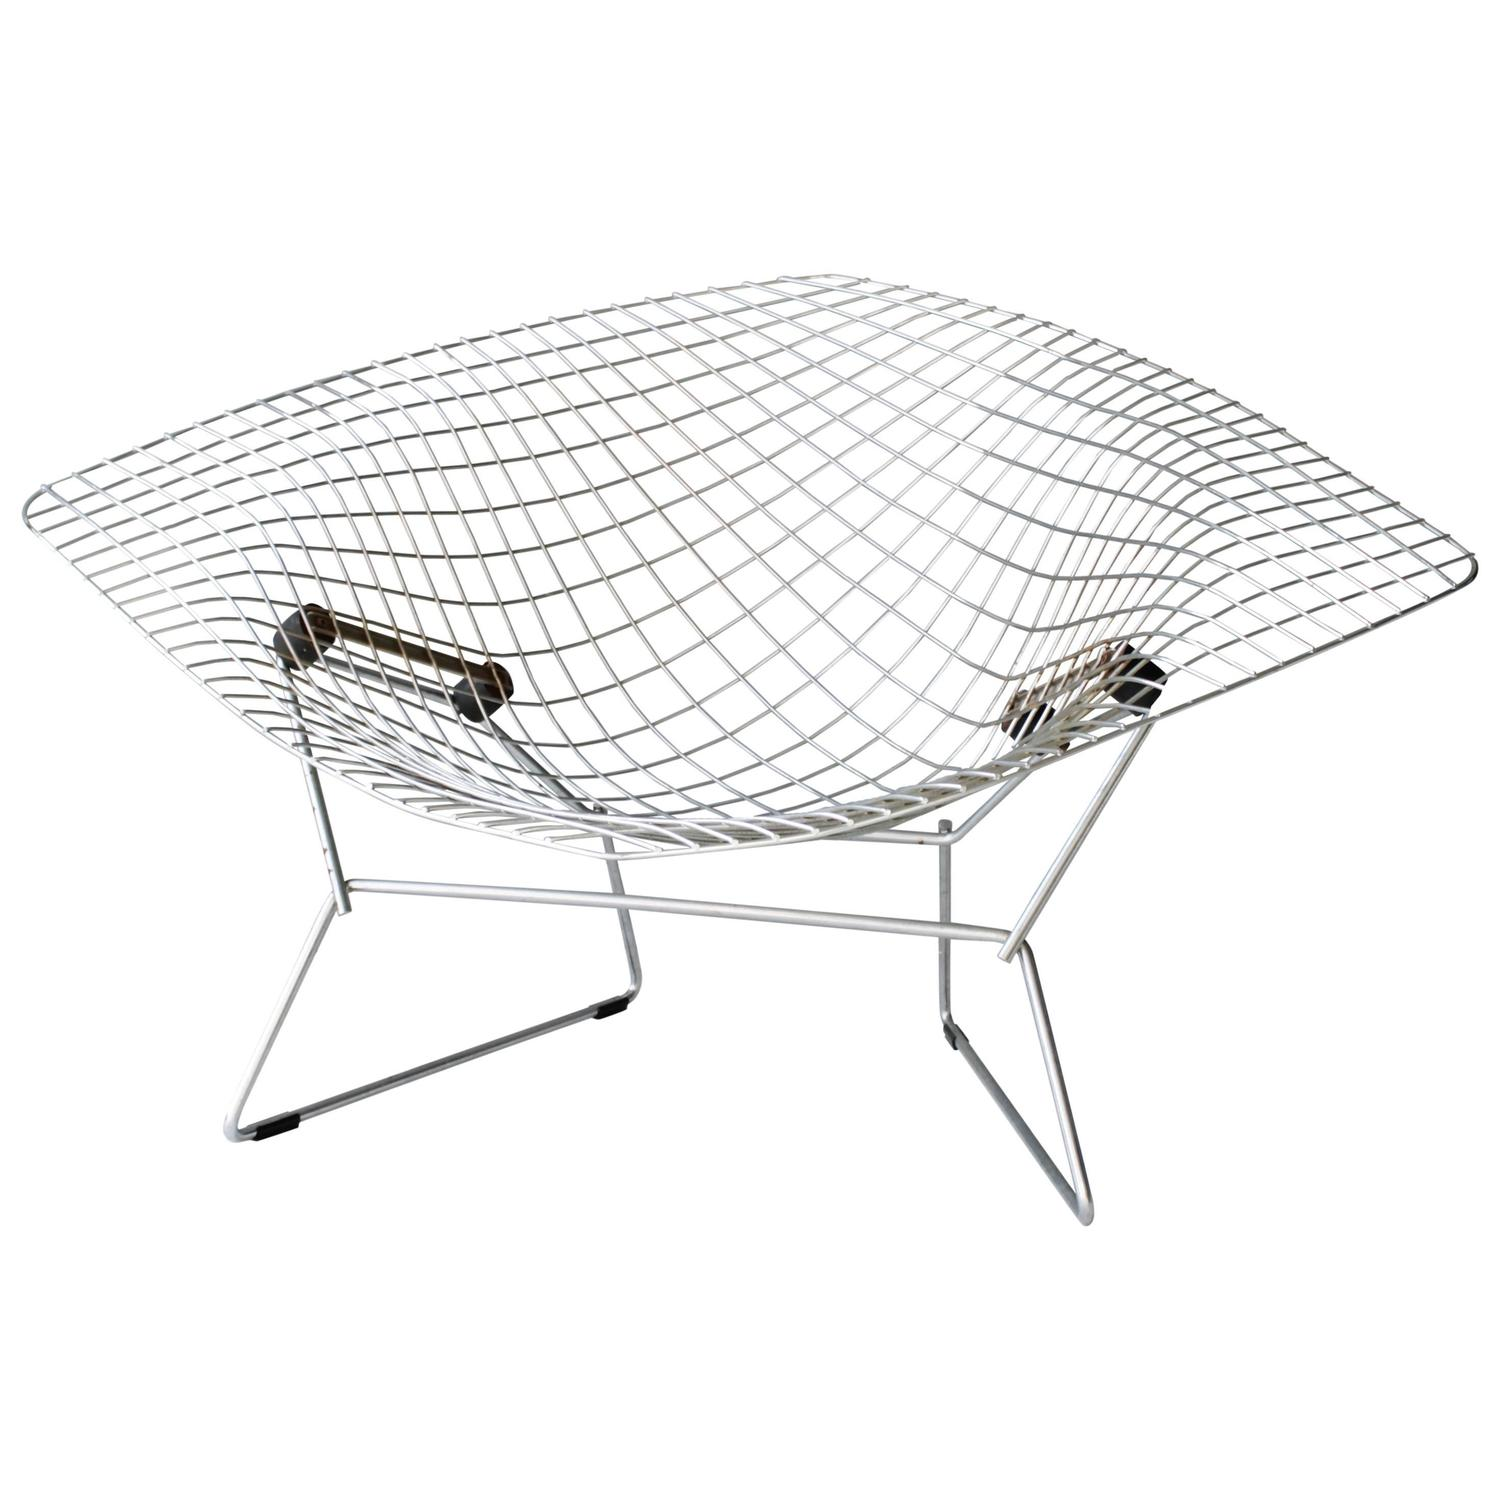 Bertoia diamond chair black - Bertoia Diamond Chair Black 19